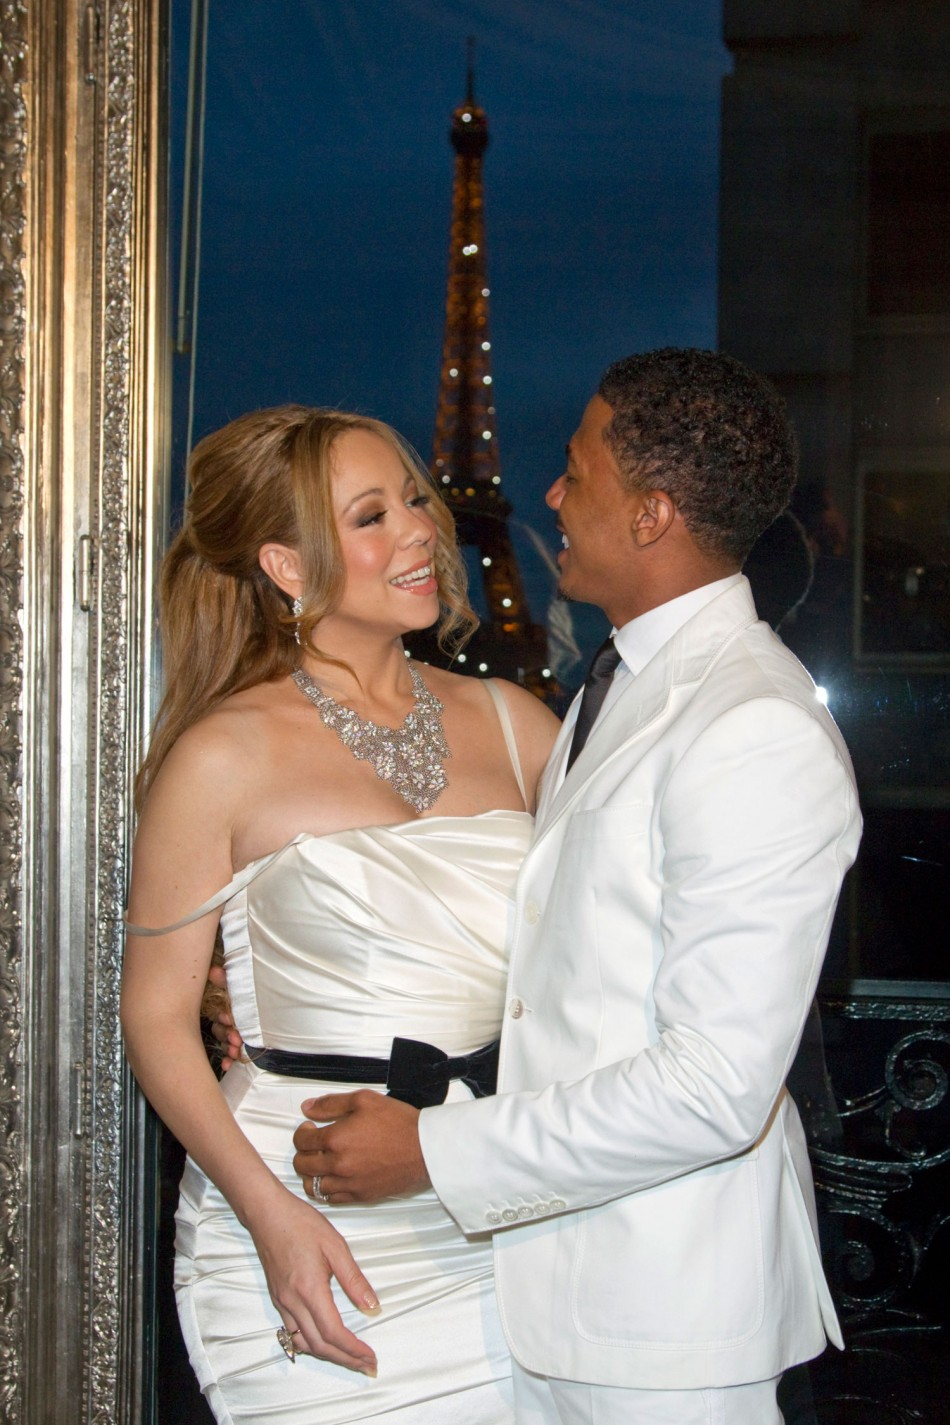 Mariah Carey and Nick Cannon Says I do for the Fourth Time